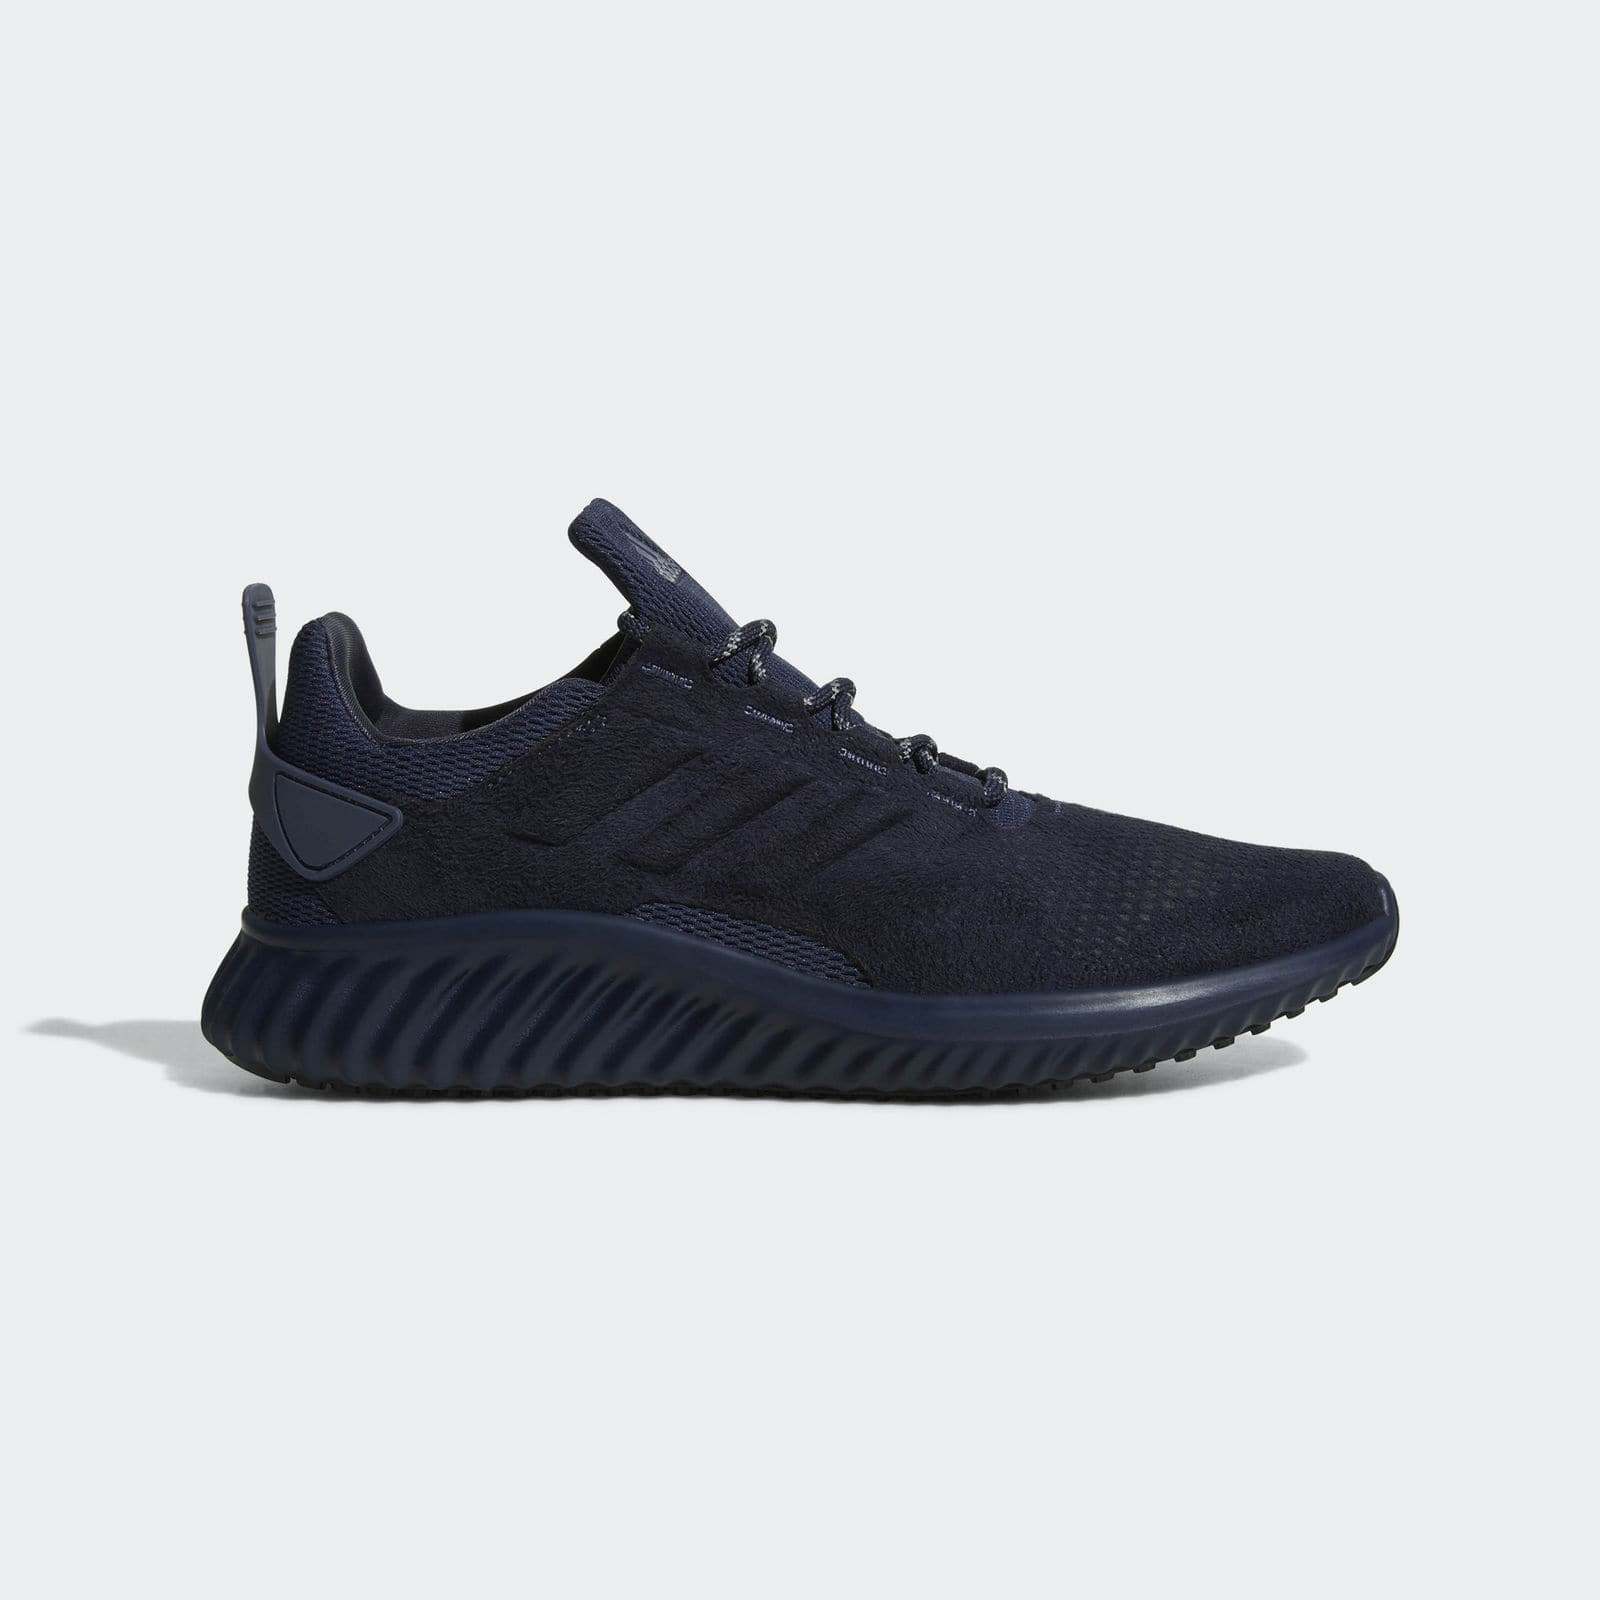 b34f04963e9d1 adidas Alphabounce City Shoes Men s  39.99 - Slickdeals.net